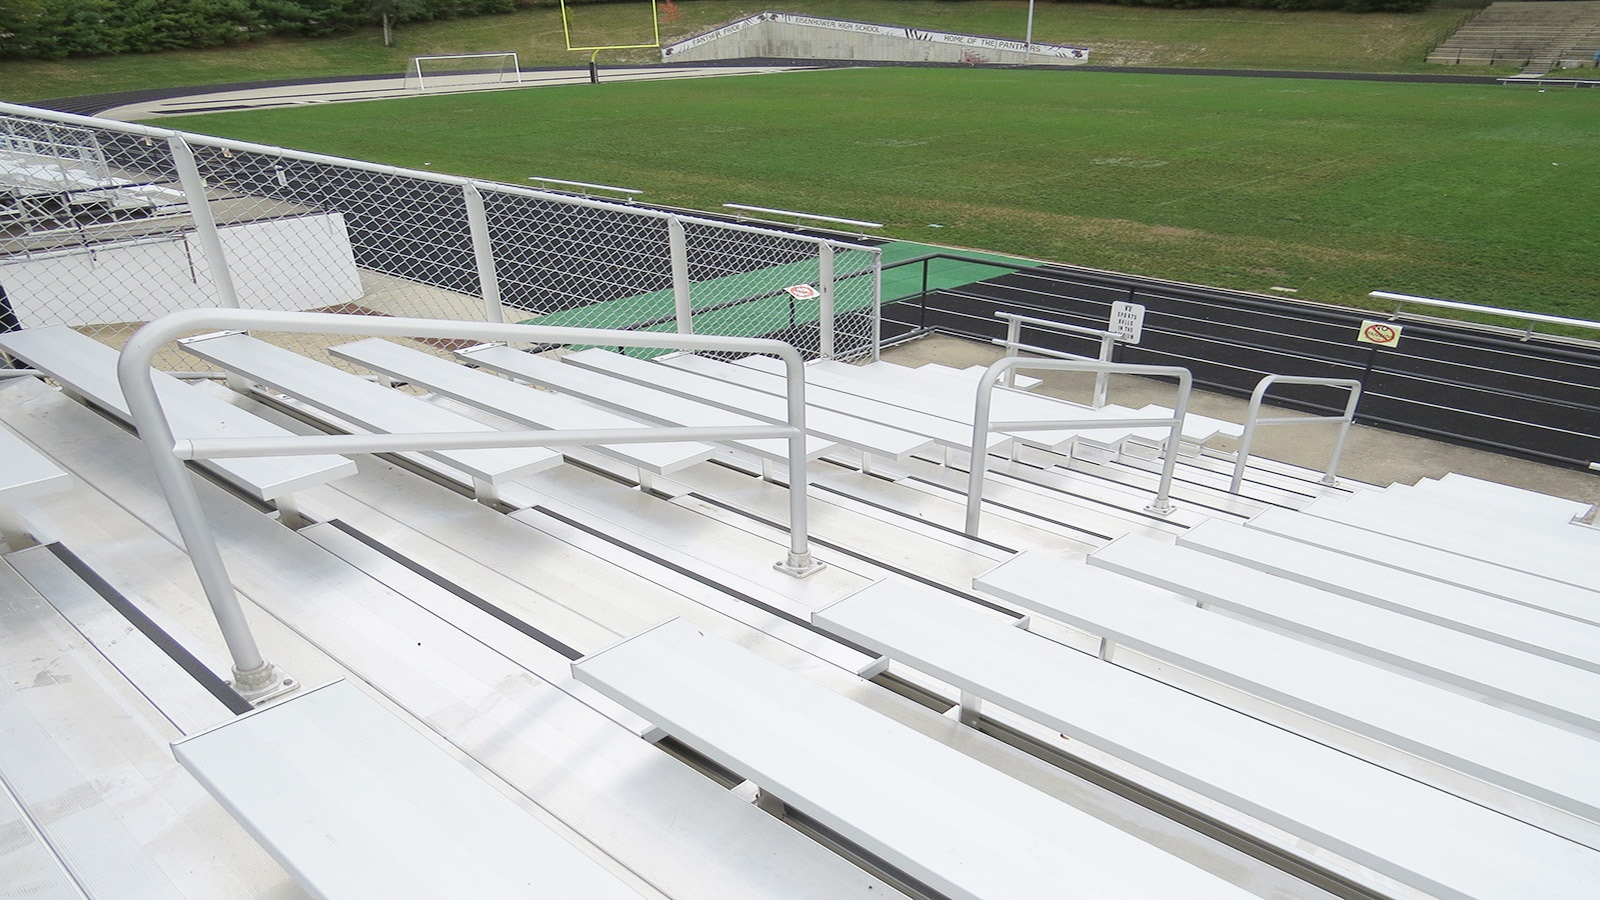 Football bleacher seating in Decatur, IL